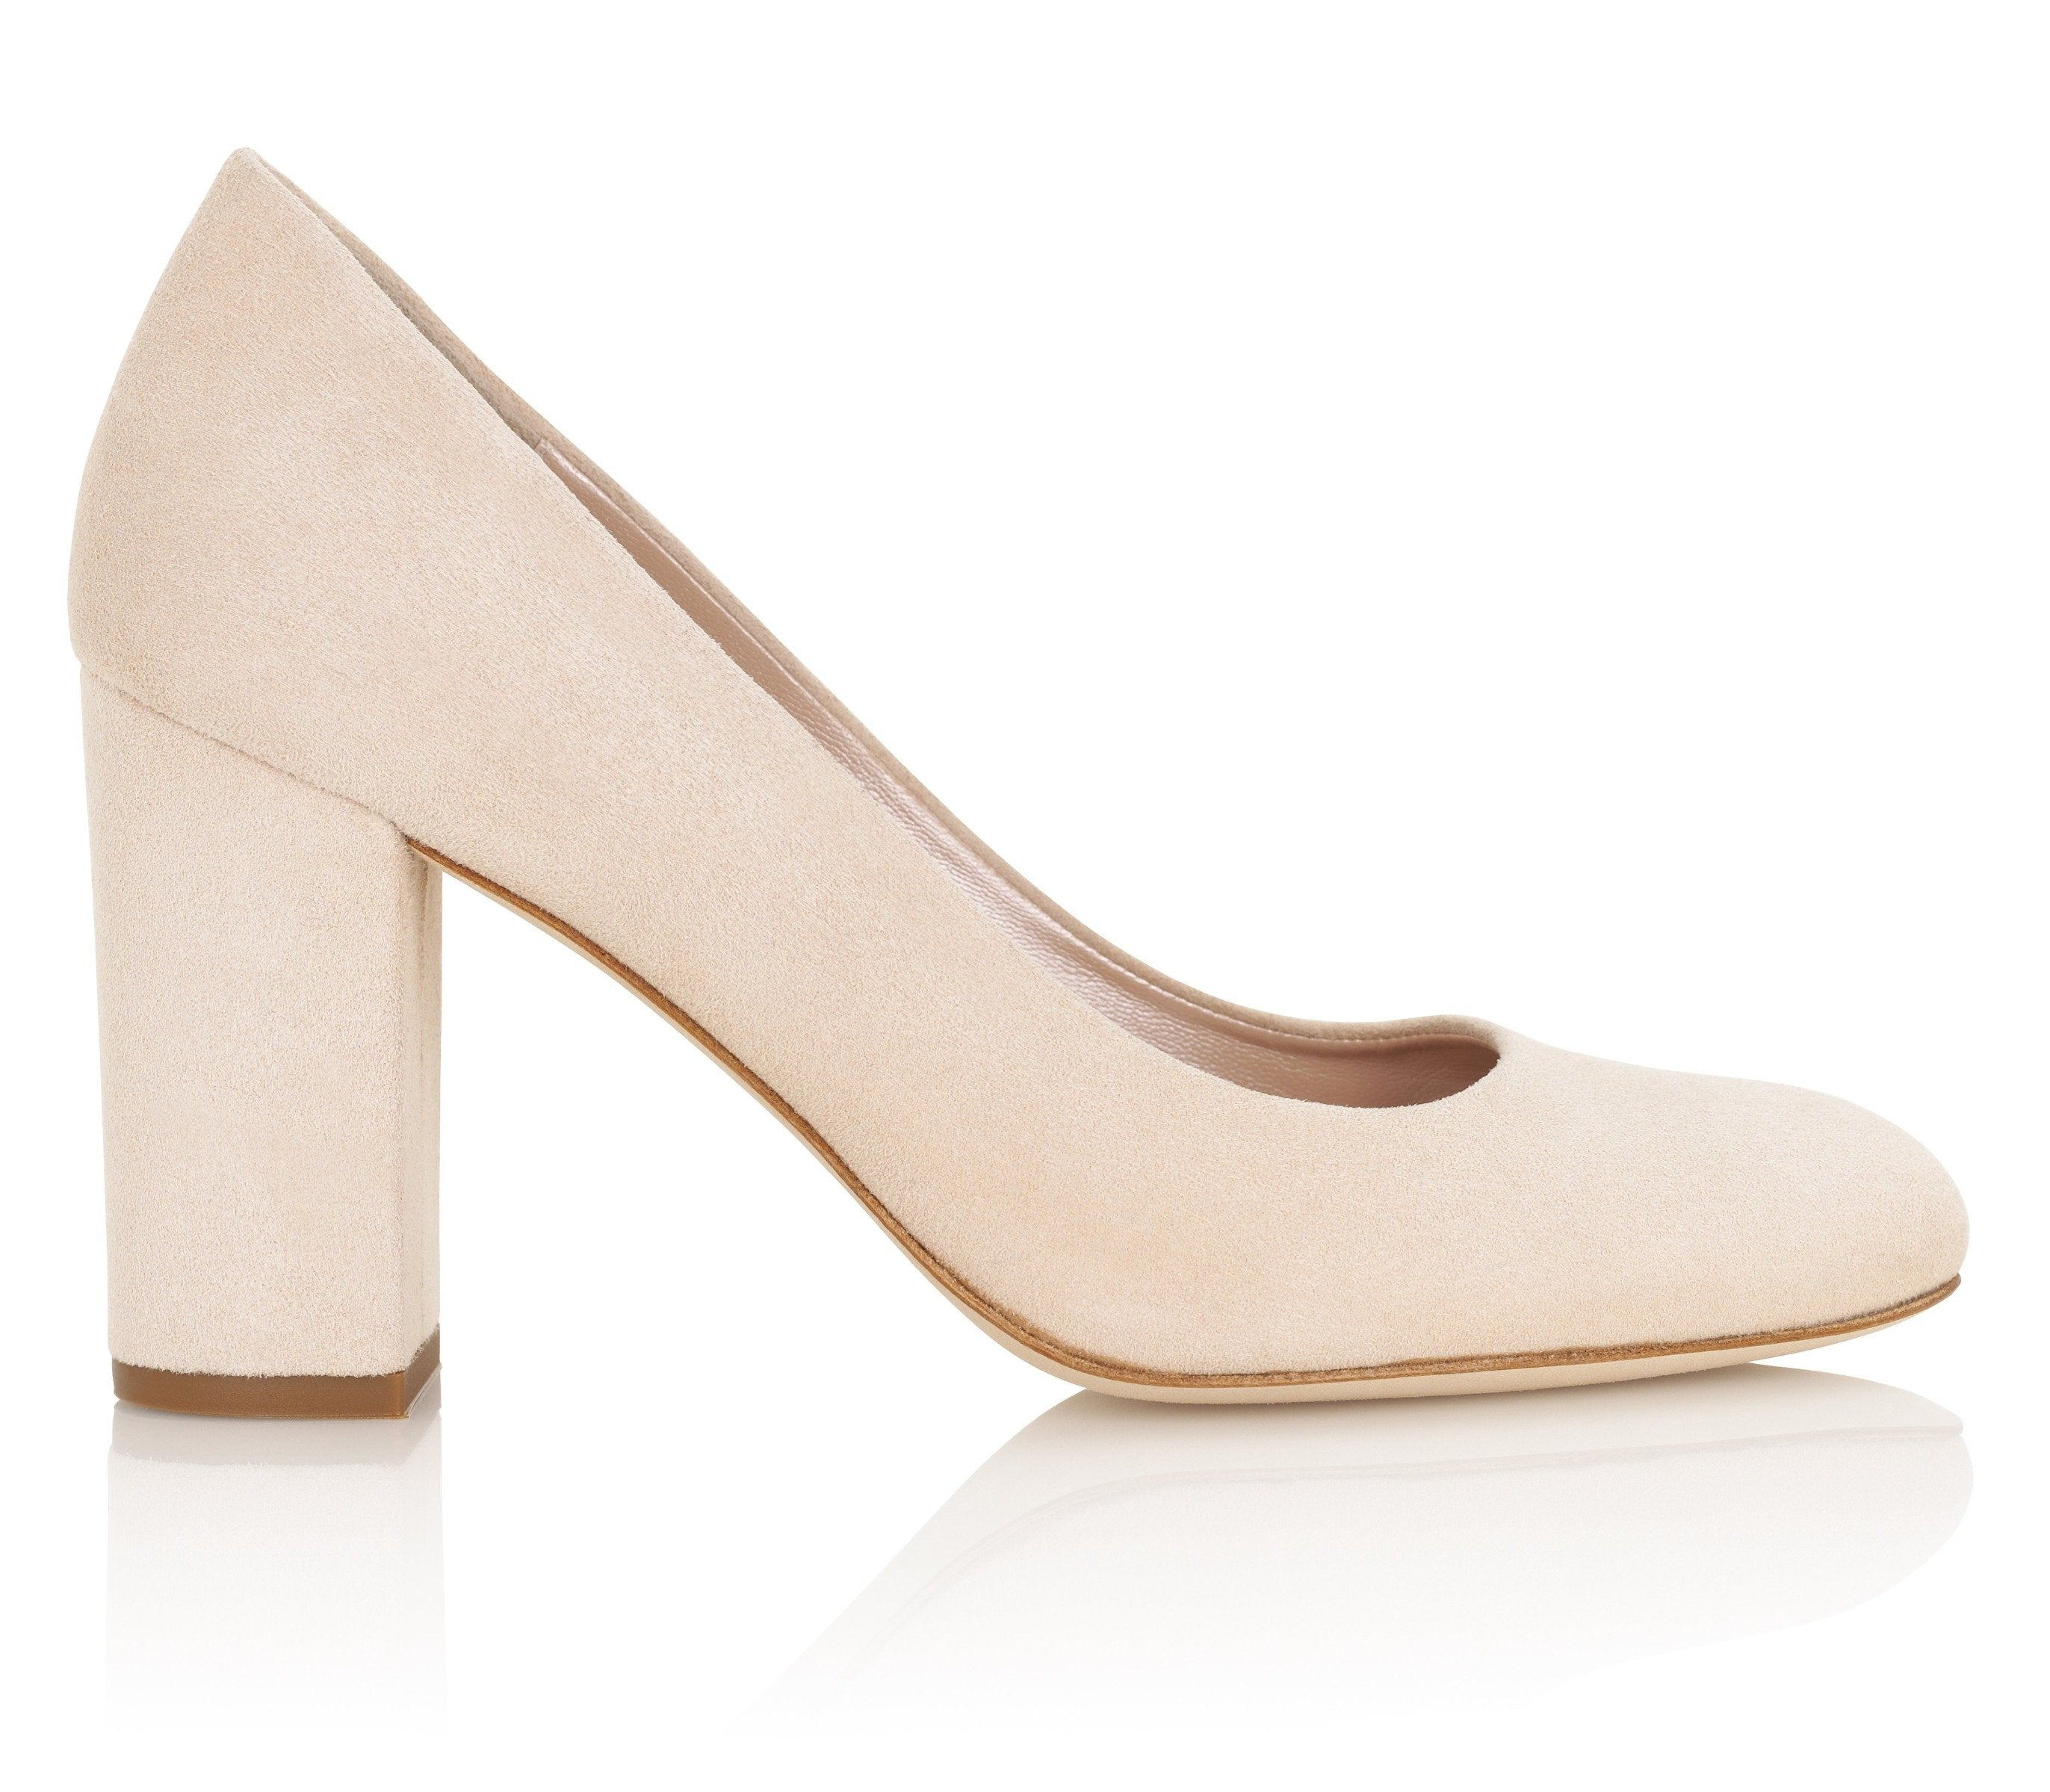 Mia Blush Luxury Block Heel Court Shoes By Emmy London